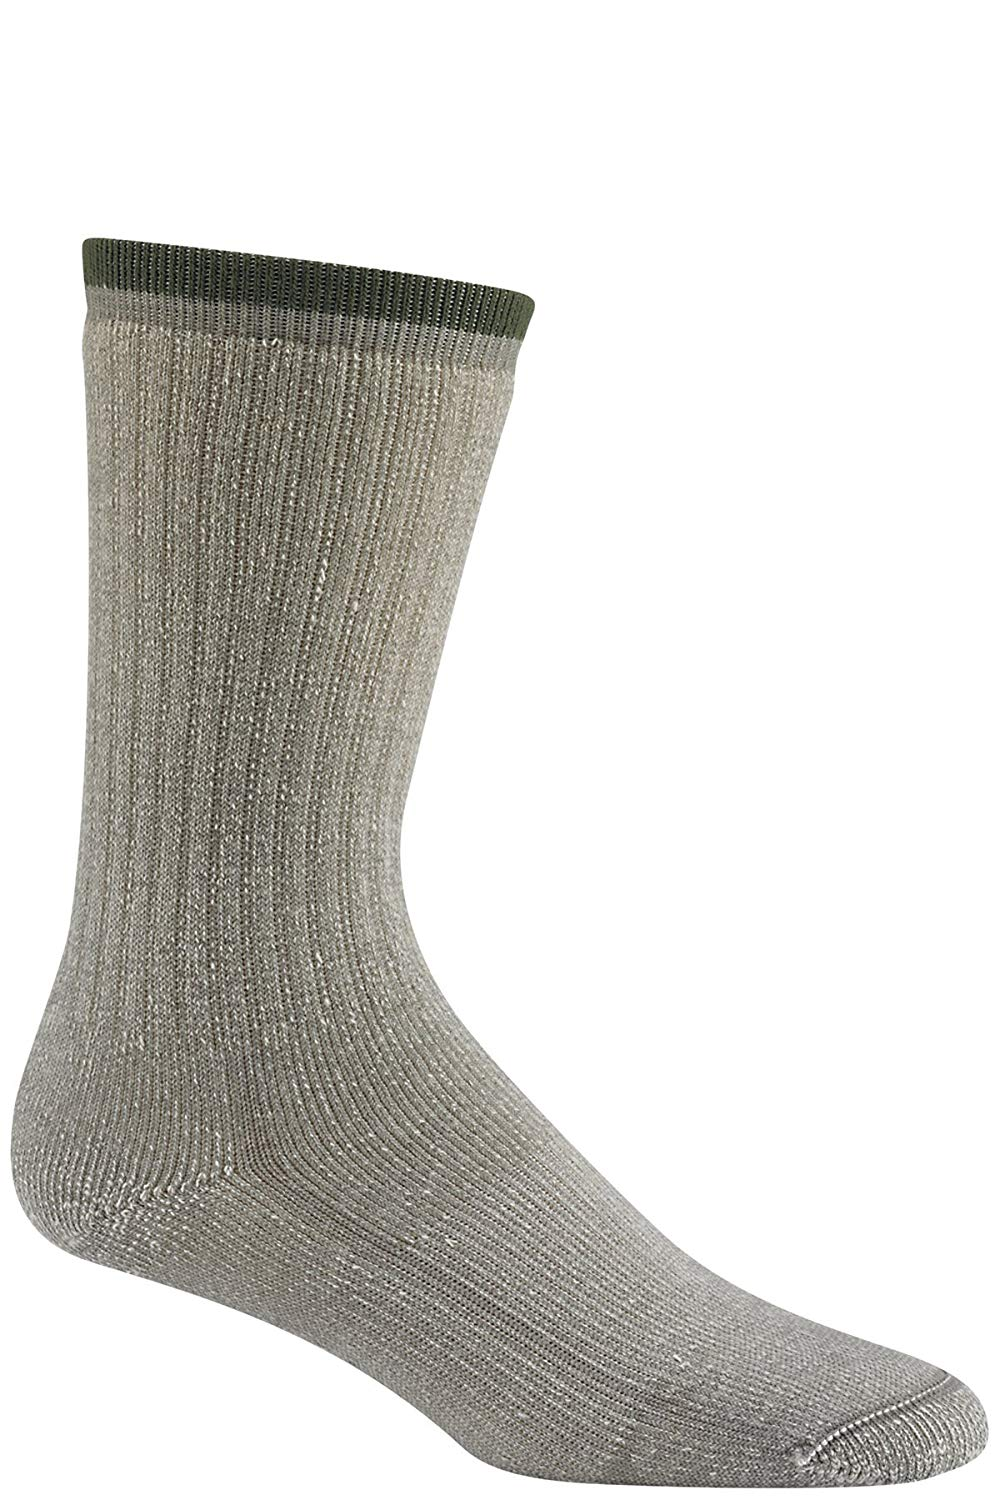 21f4655691ba Get Quotations · Wigwam Men s Merino Wool Comfort Hiker Crew Length Sock